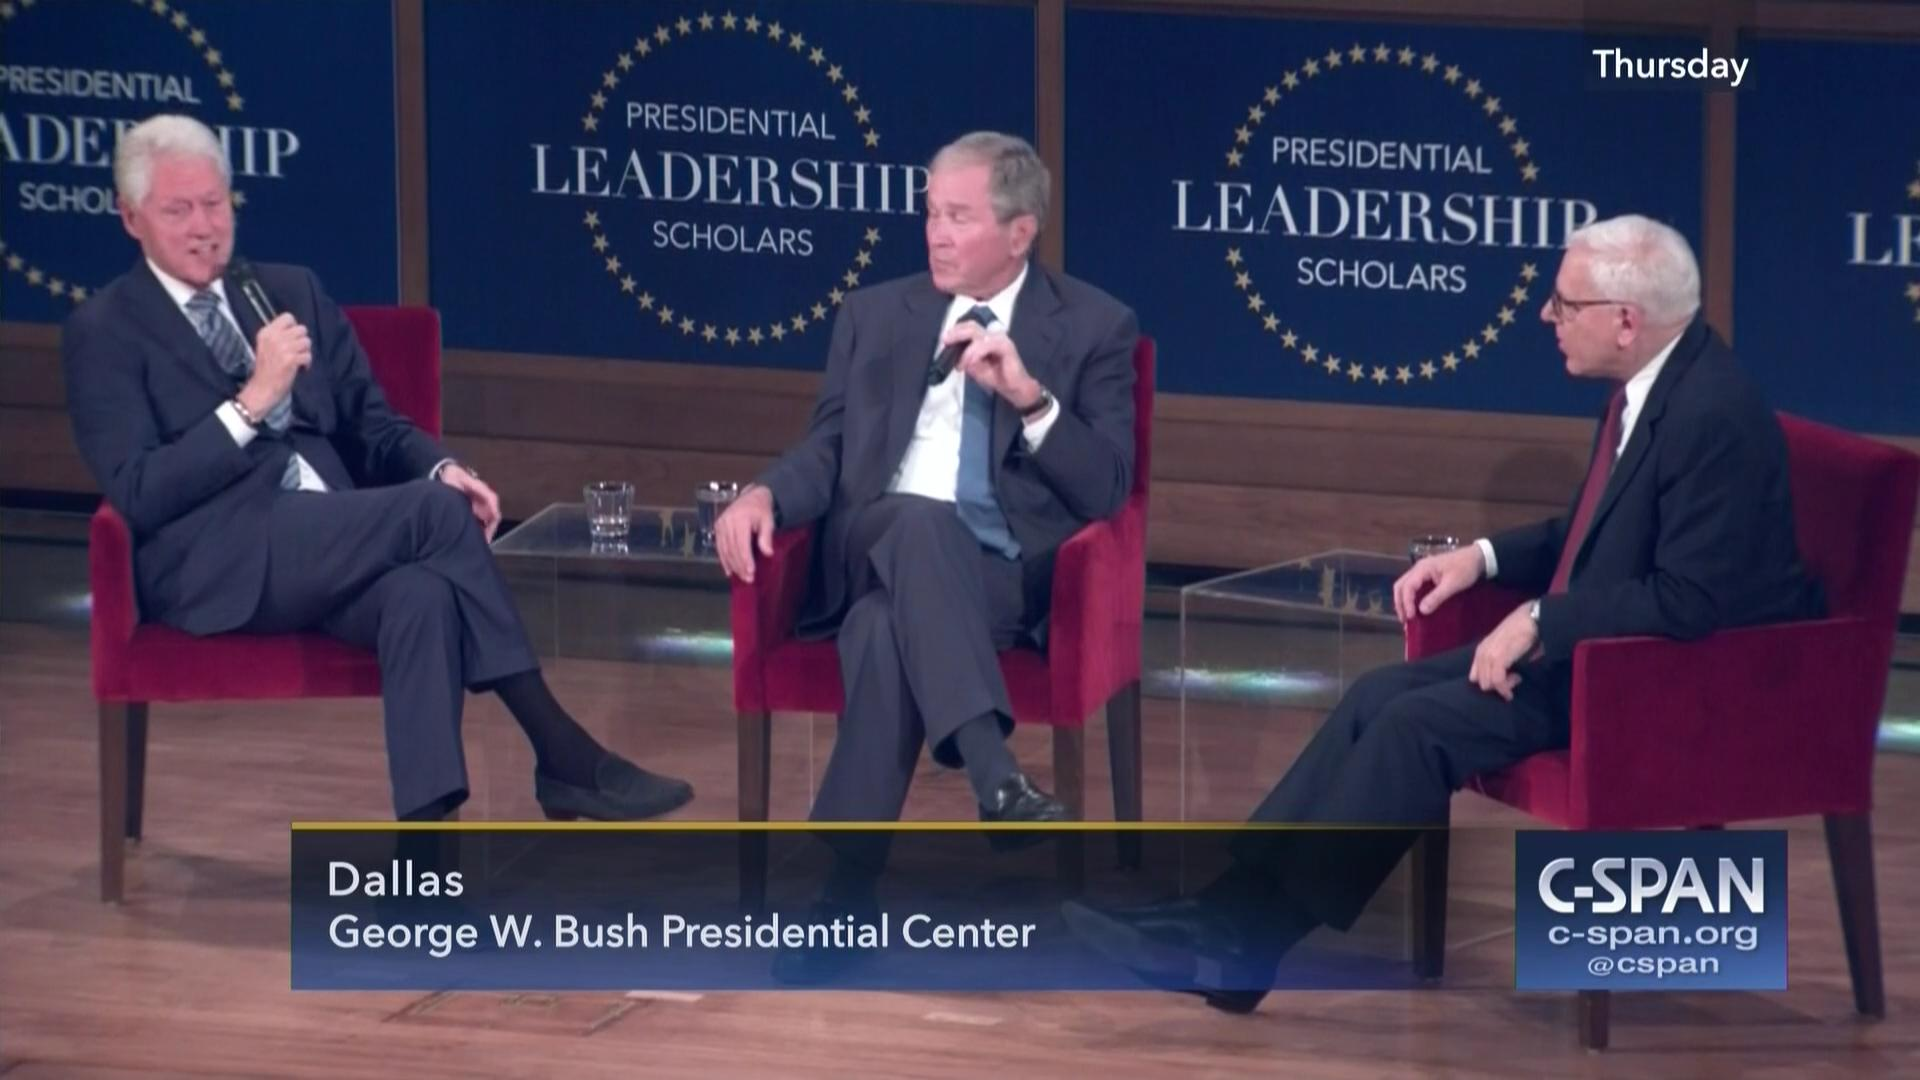 Presidents Clinton Bush Discuss Leadership Friendship Jul 13 2017